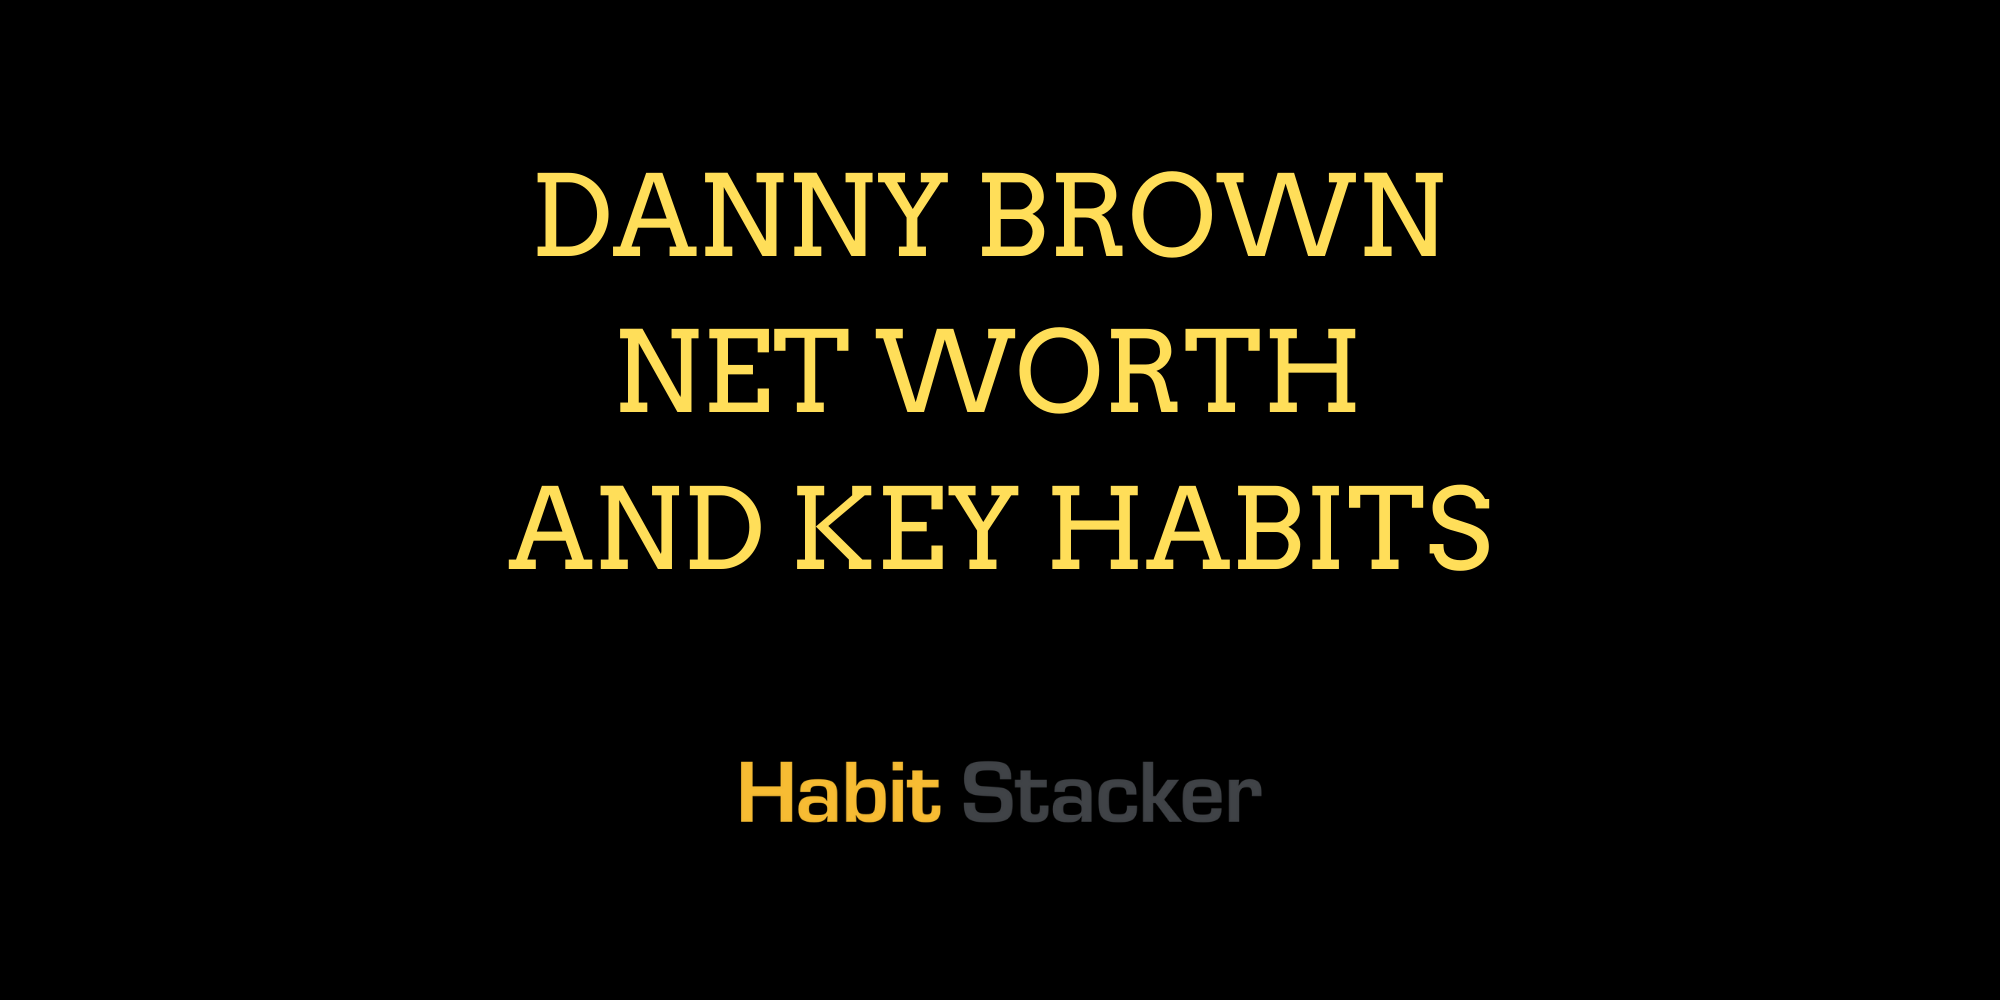 Danny Brown Net Worth and Key Habits